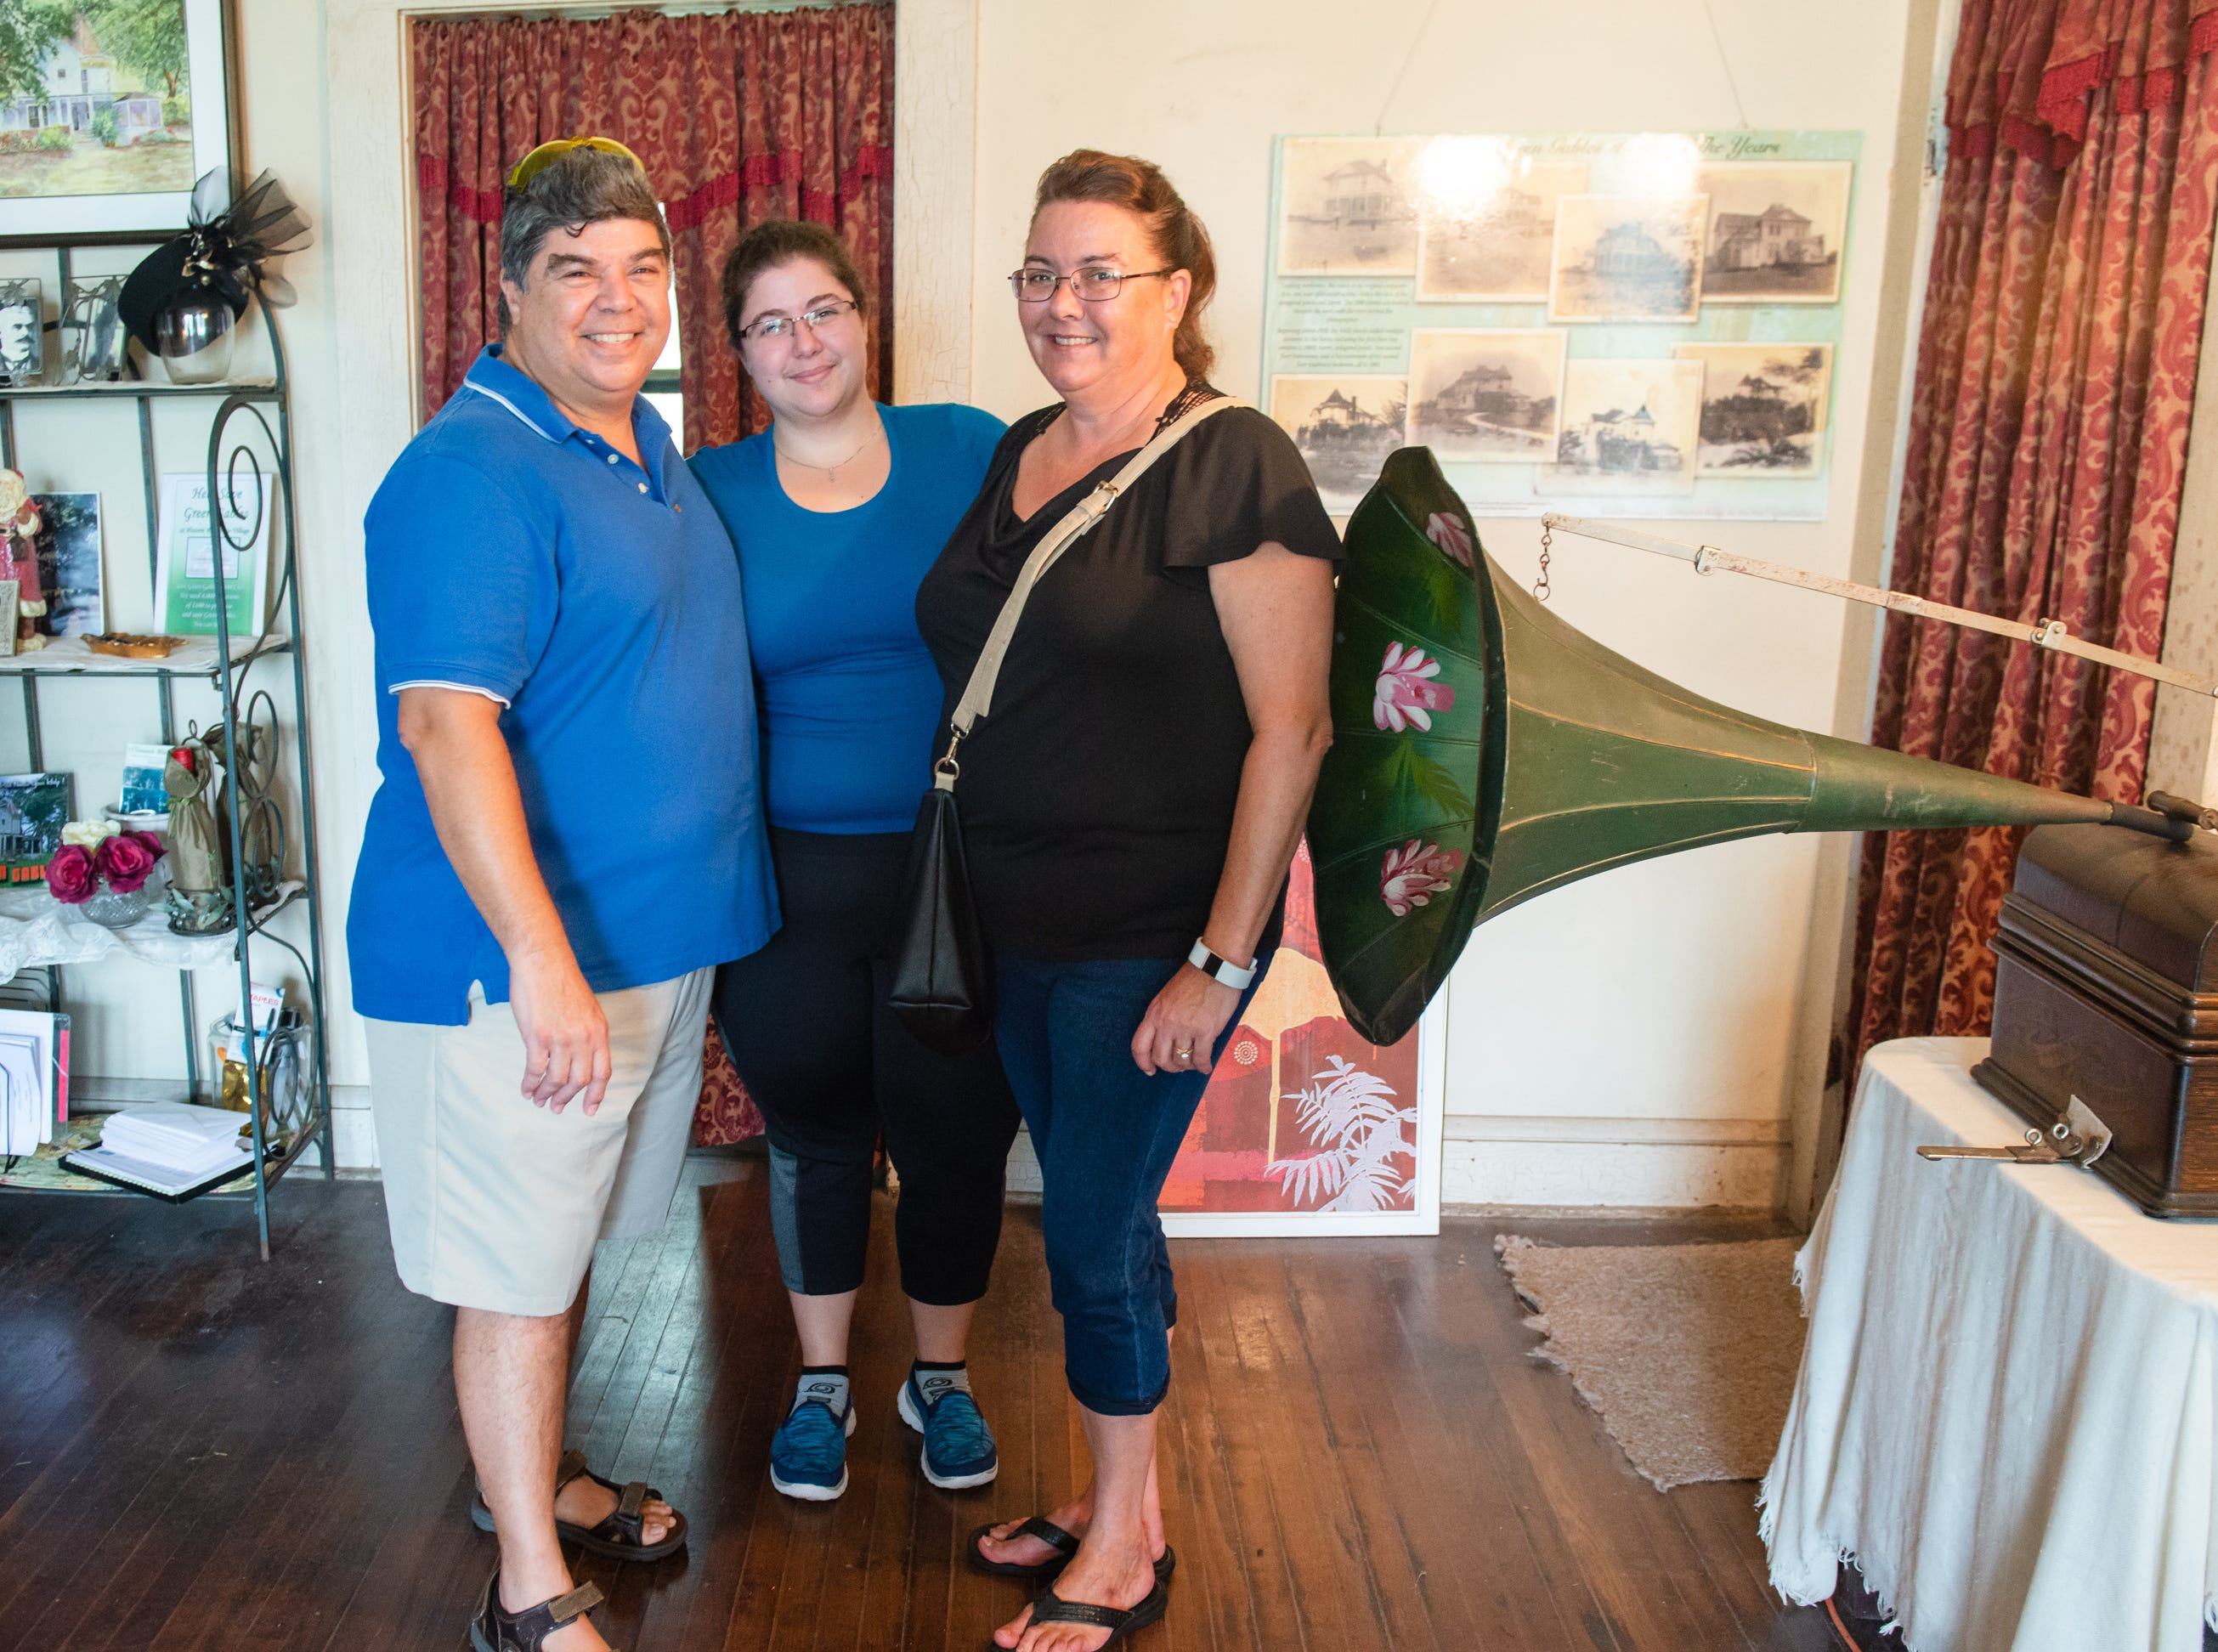 Gil, Megan and Rebecca Castillo at the Christmas in July event, which raised money to restore the Green Gables Victorian house in Melbourne.